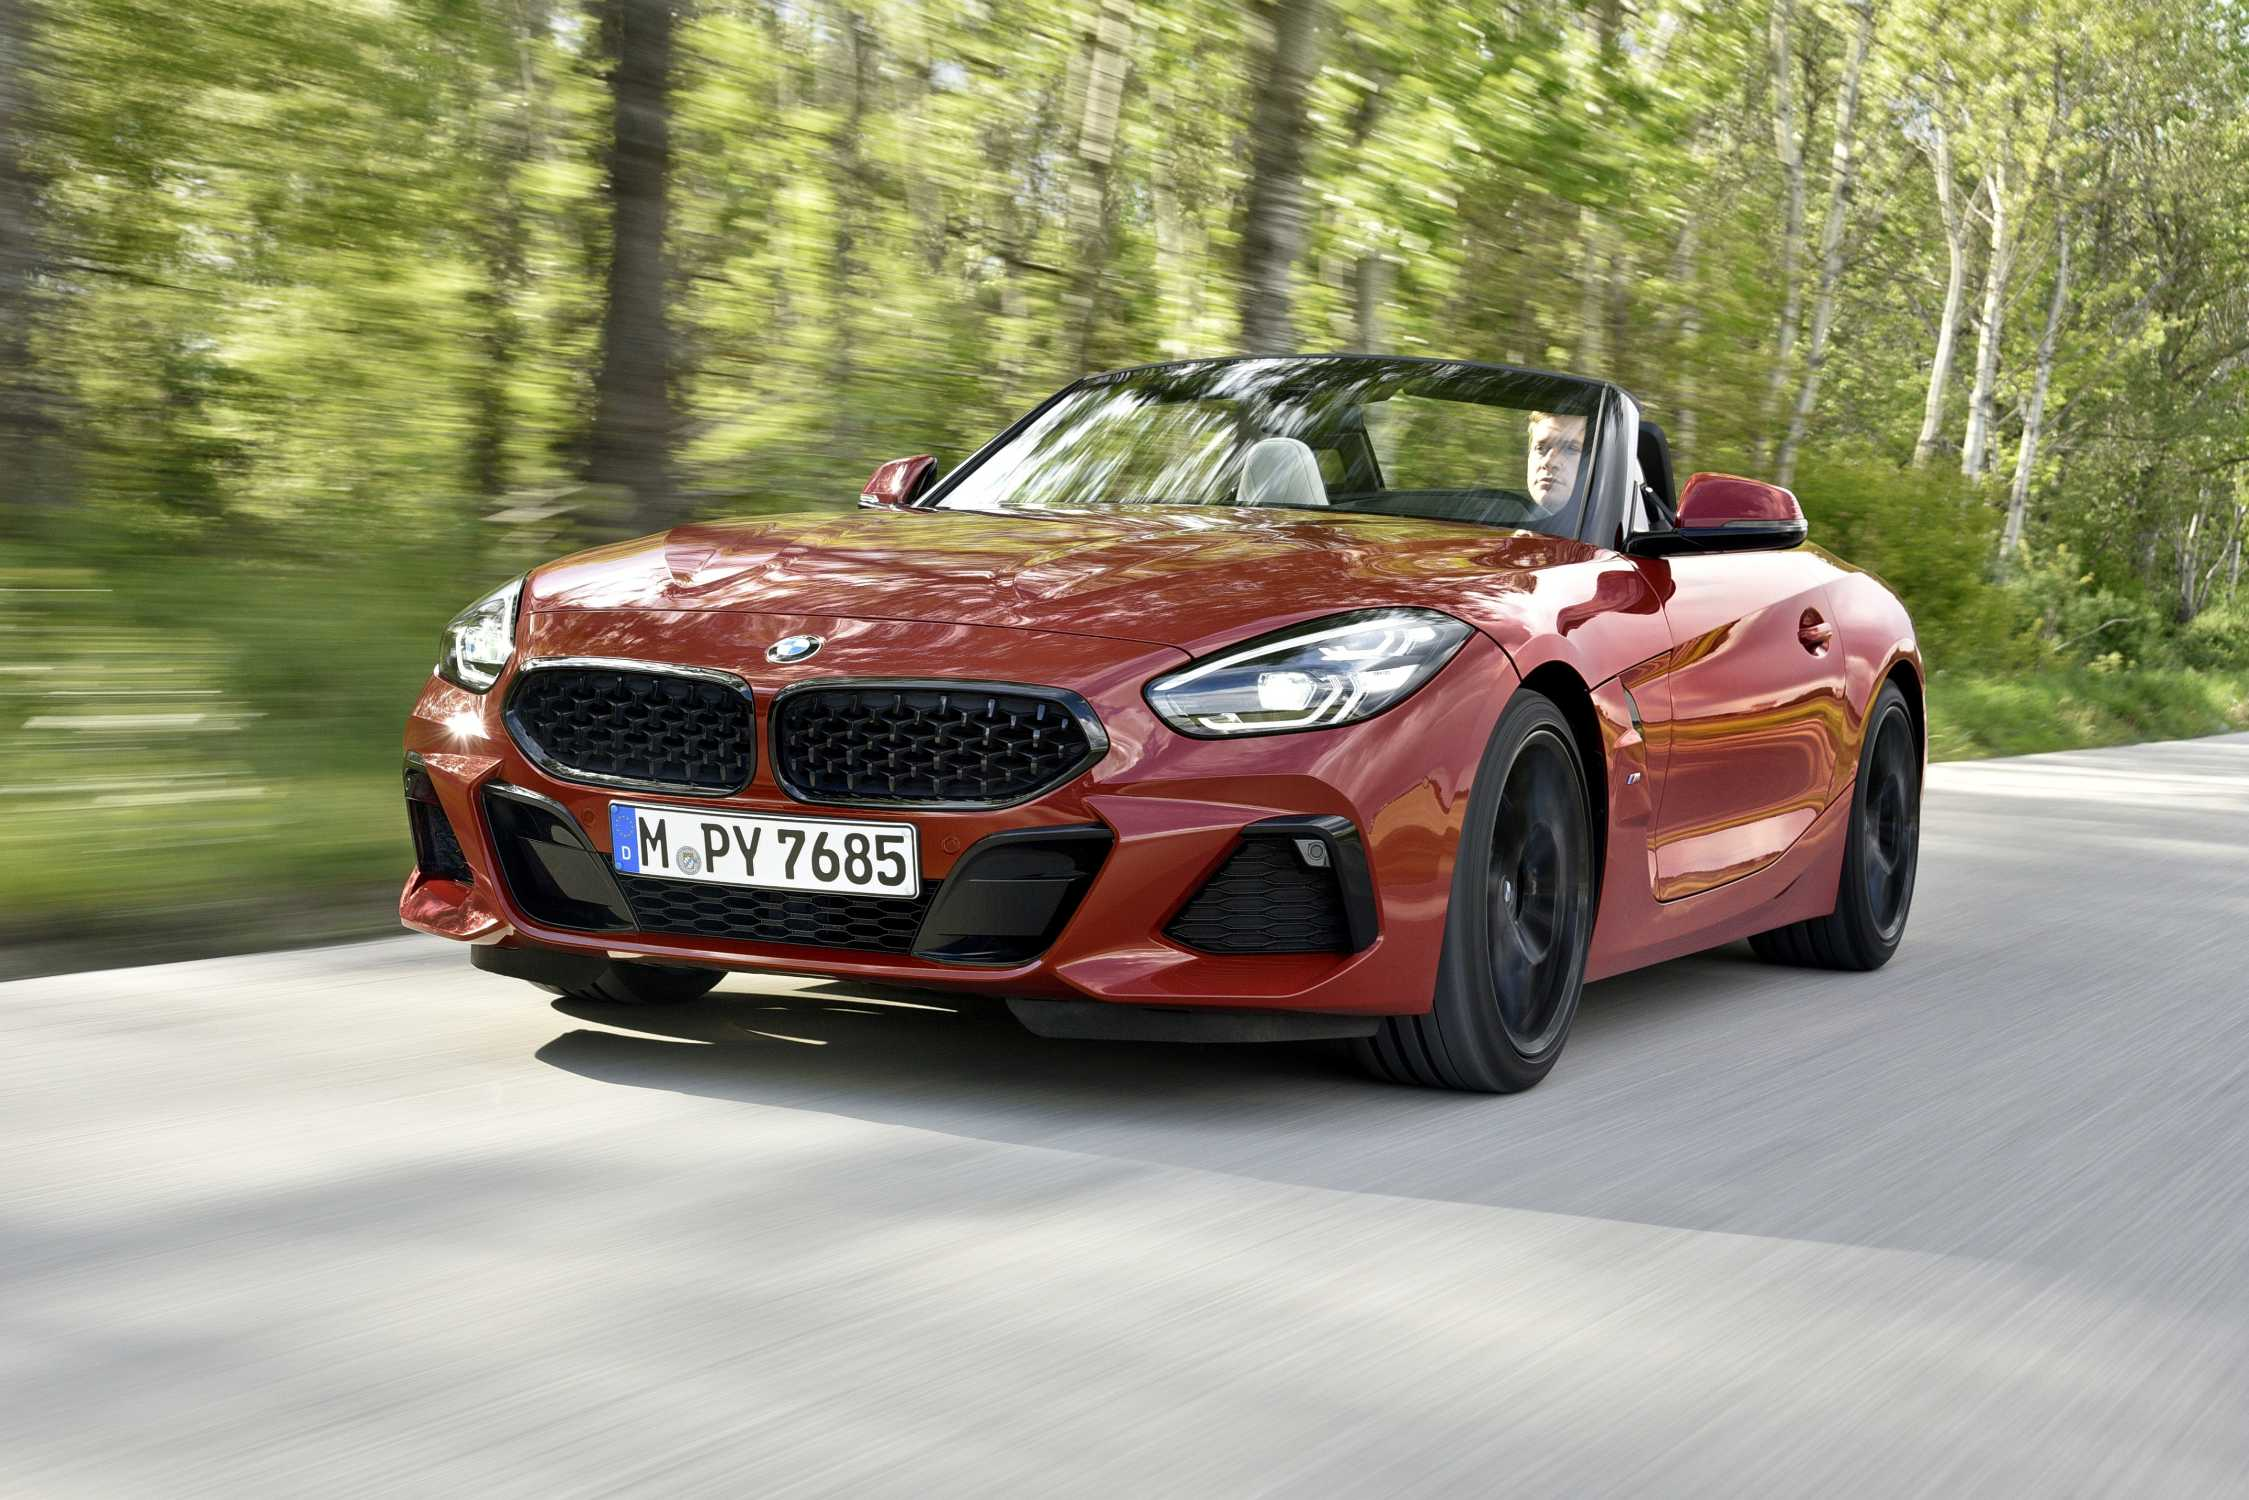 The new BMW Z4 Roadster (05/2019).